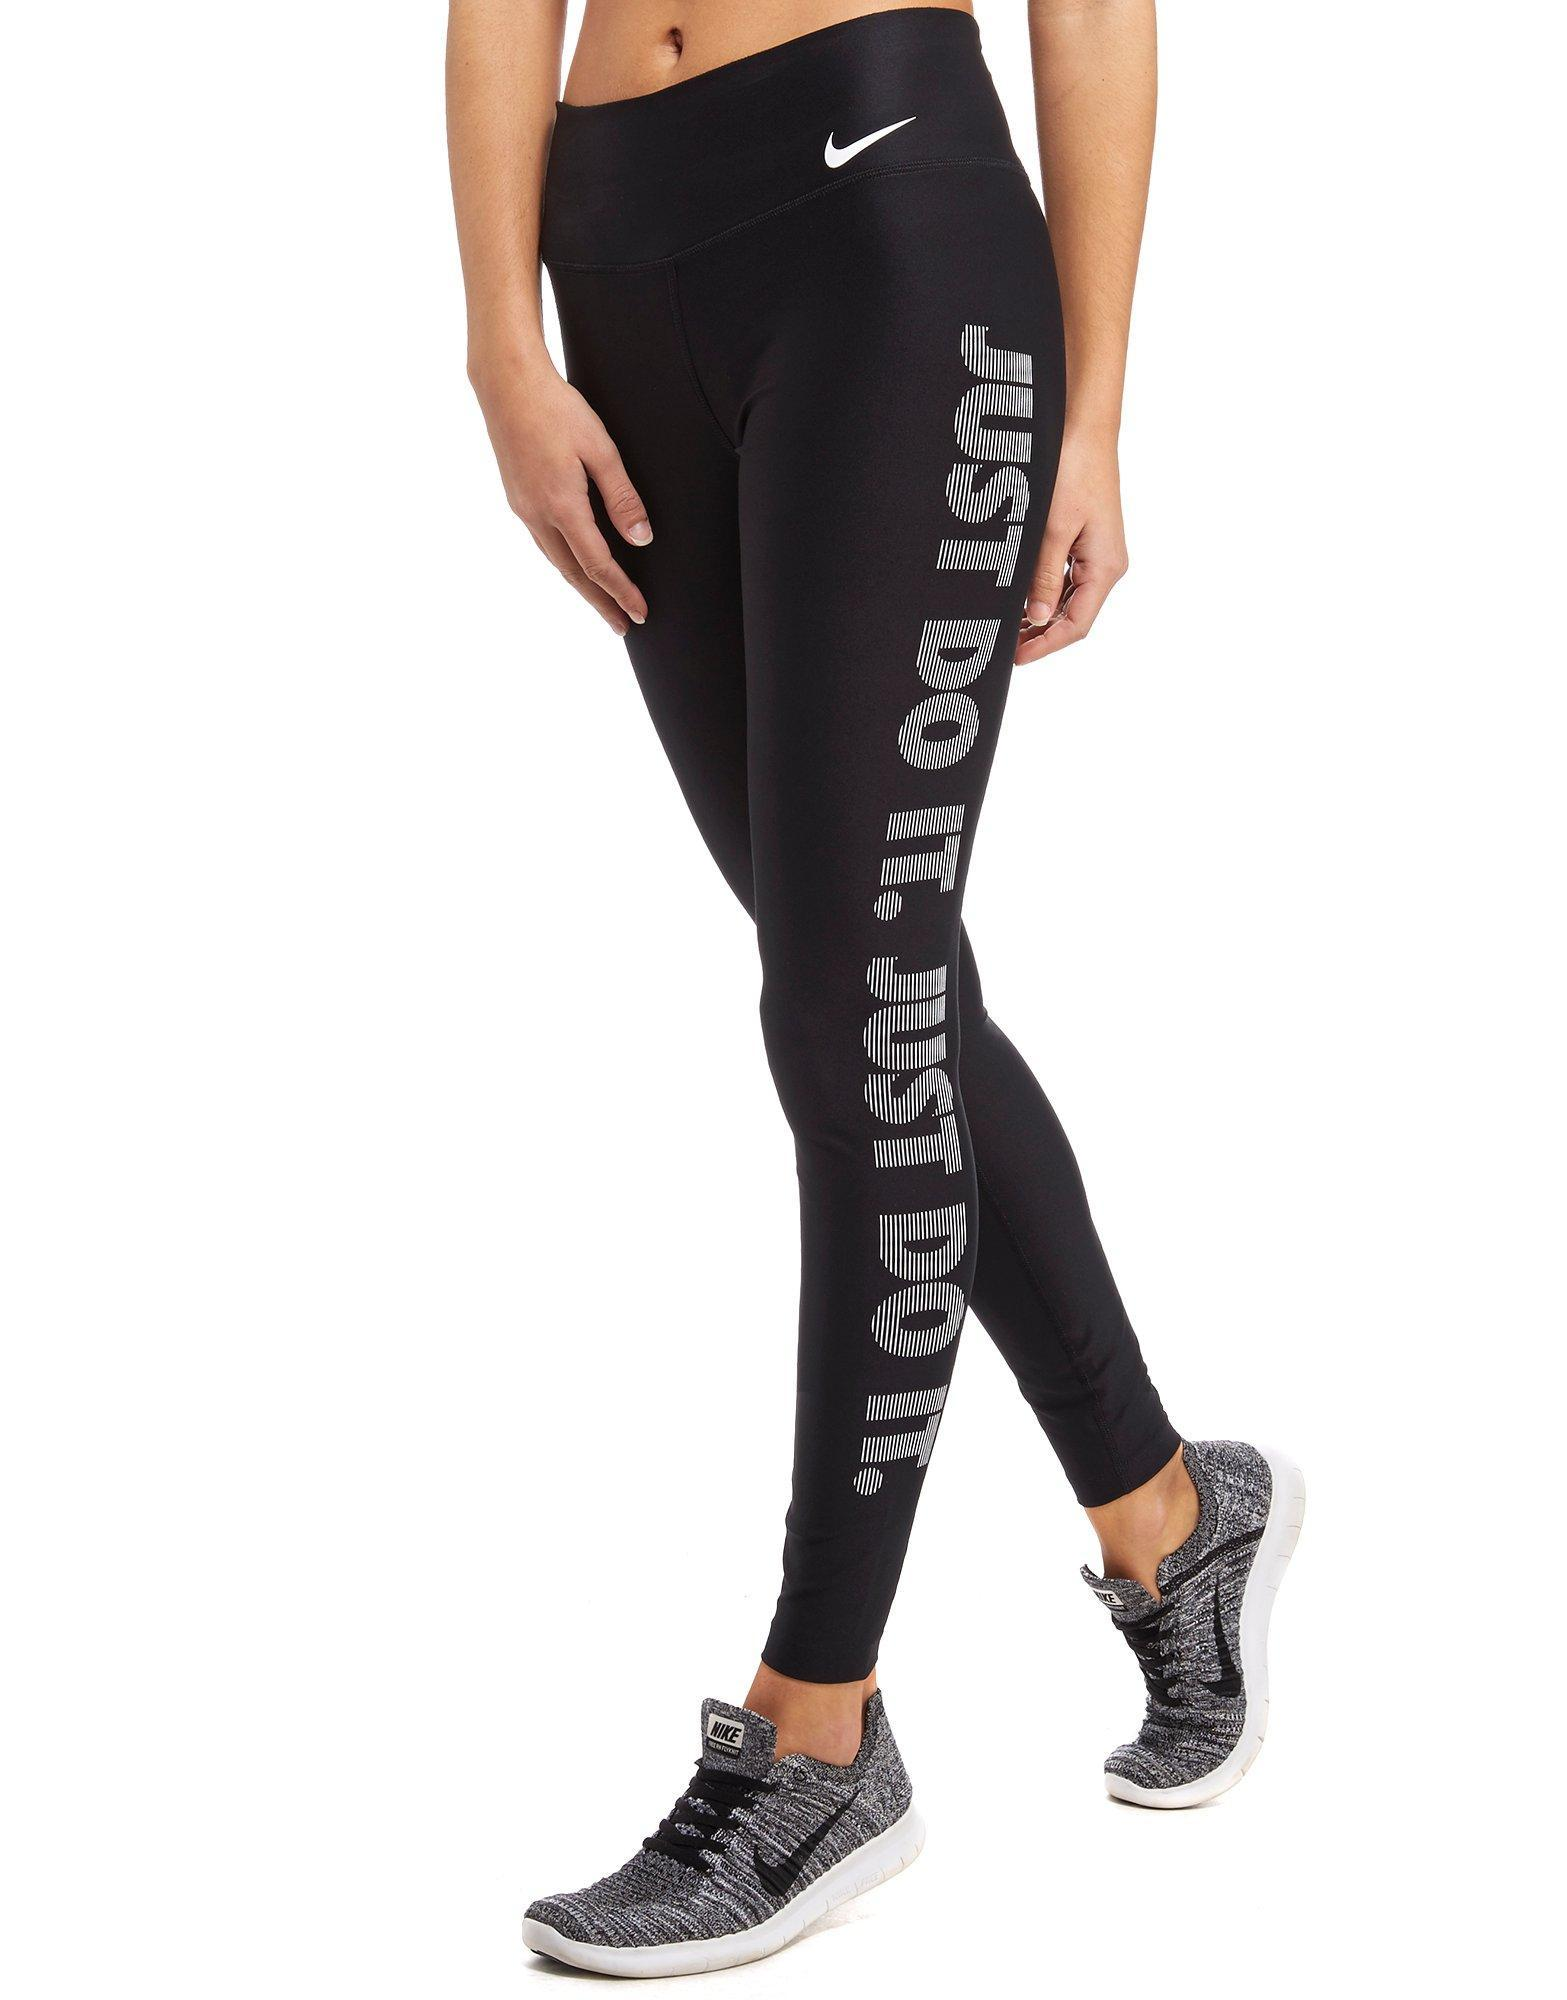 nike just do it right power tights in black lyst. Black Bedroom Furniture Sets. Home Design Ideas